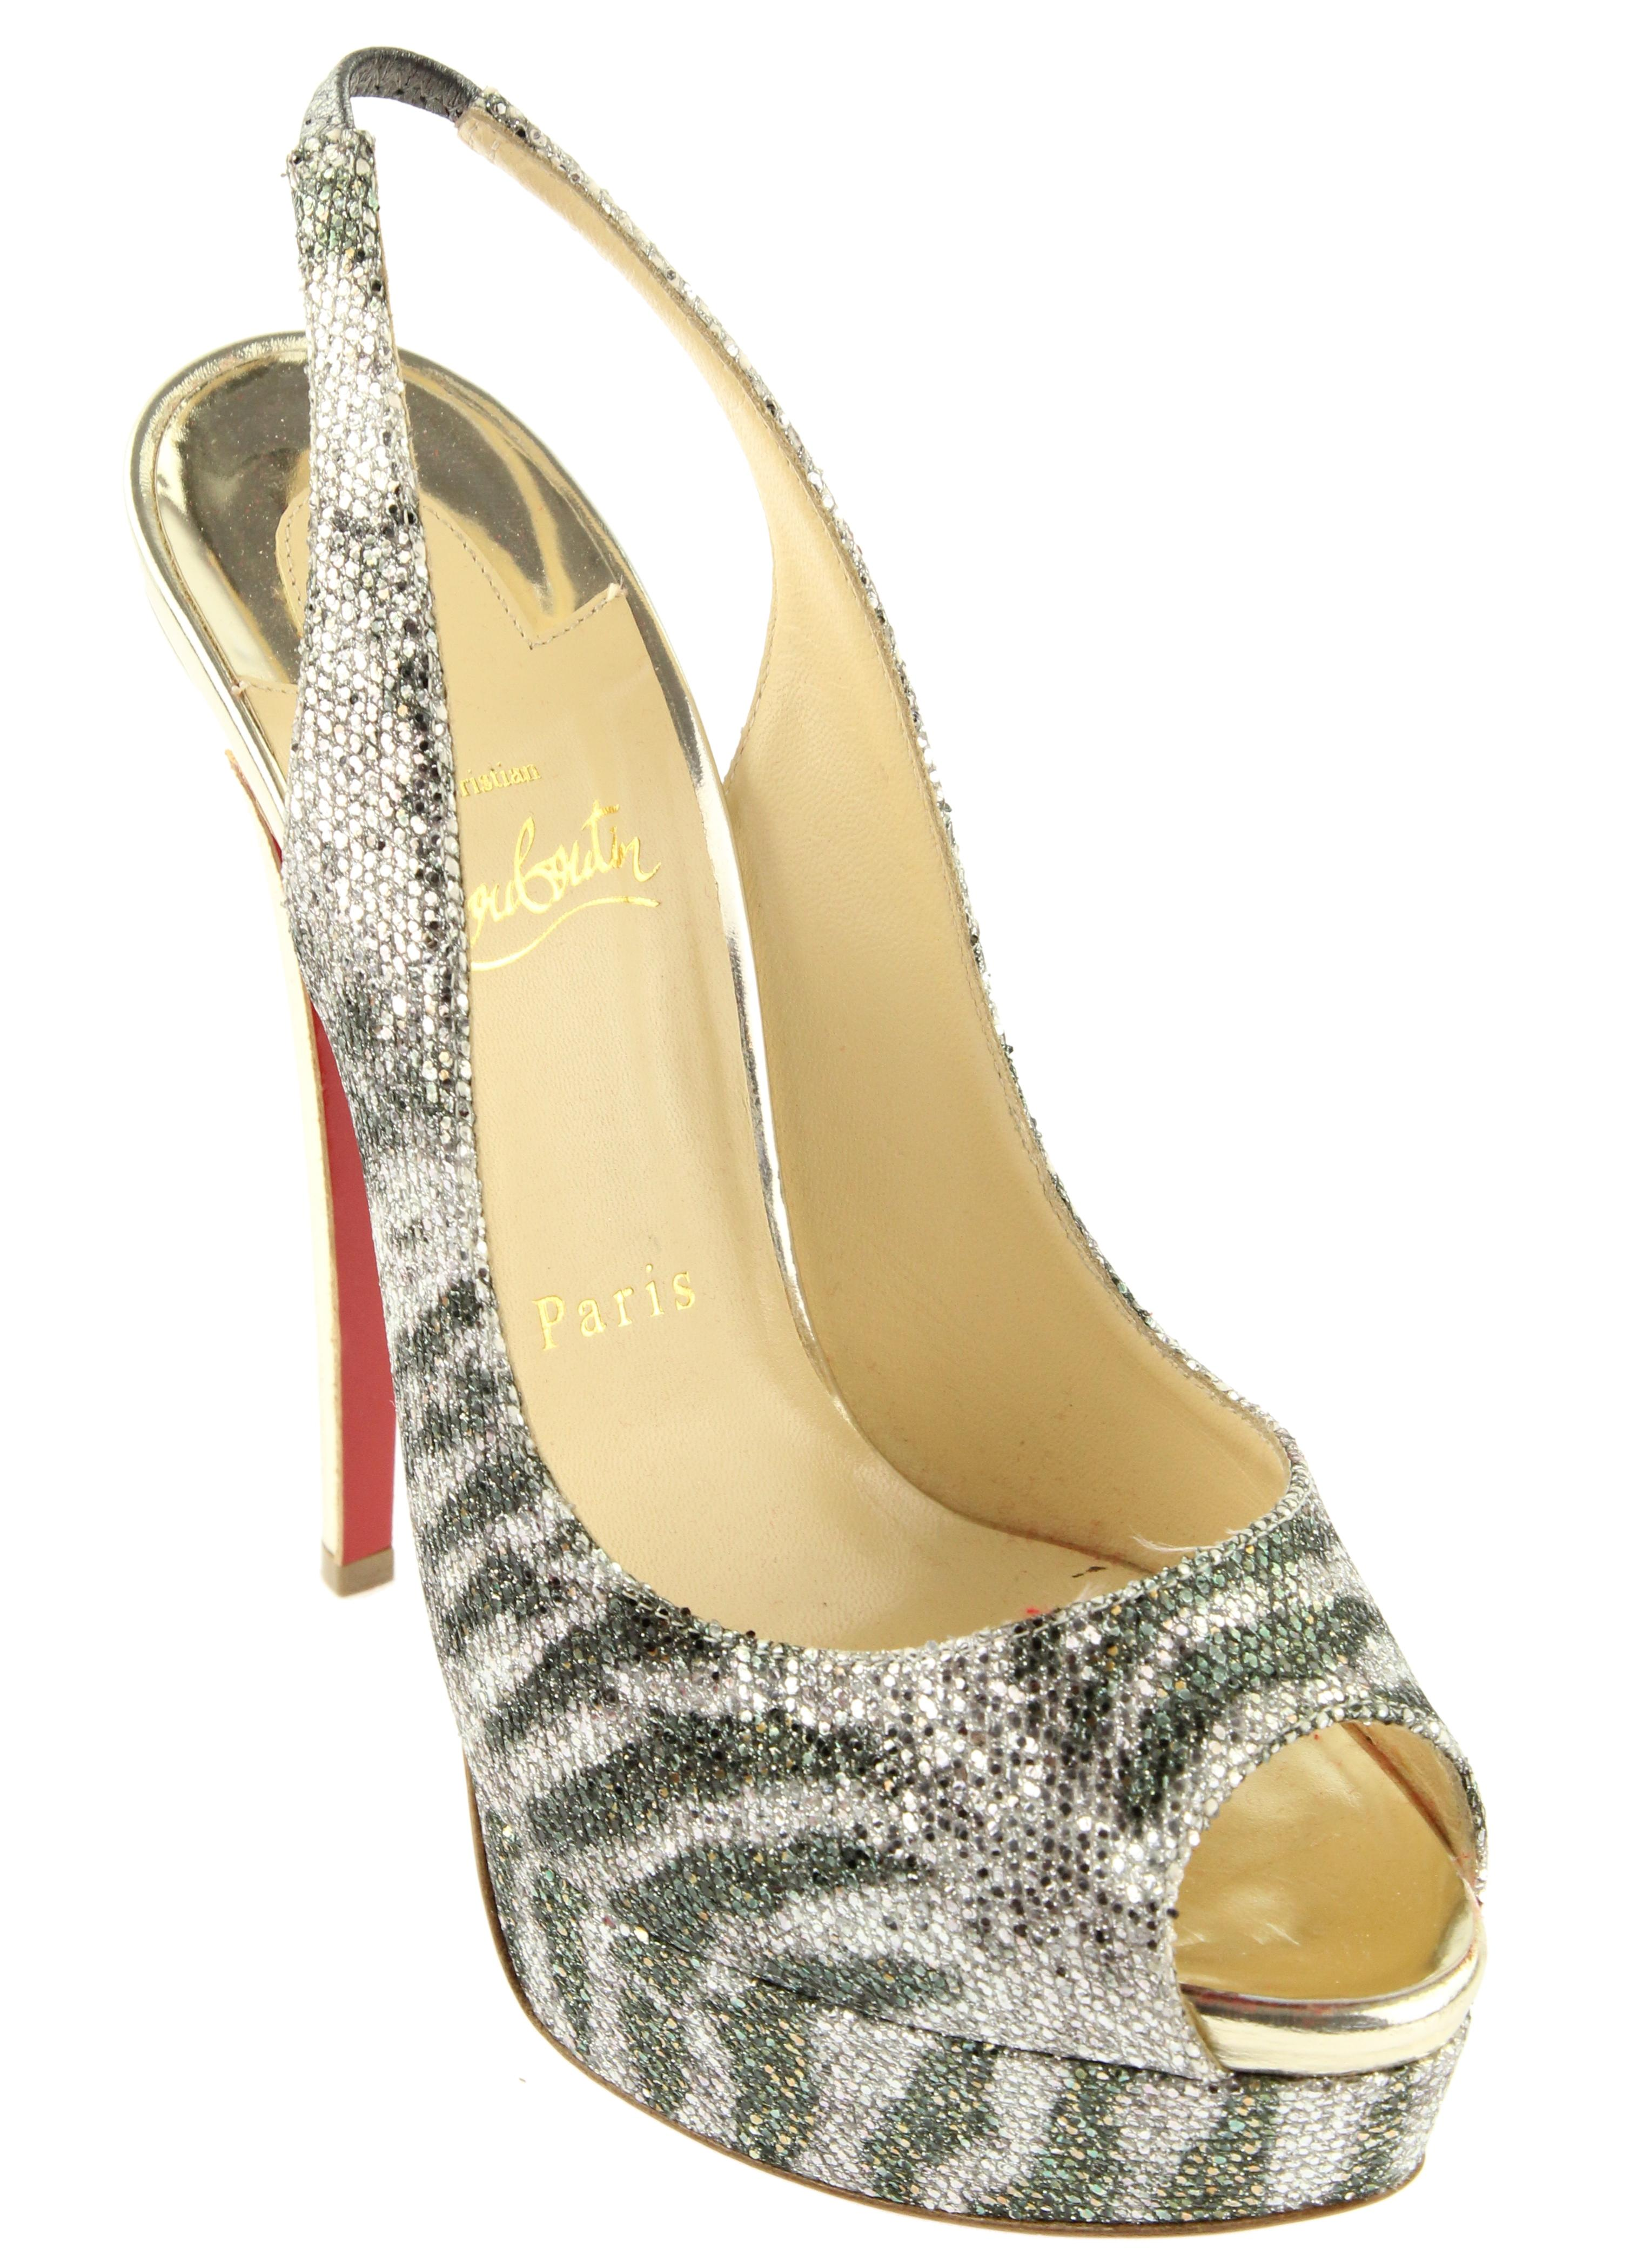 shop online Christian Louboutin Lady Peep Sling 150 Glitter Pumps cheap sale with paypal low shipping cheap online from china free shipping low price for cheap Udgcg2wtvv